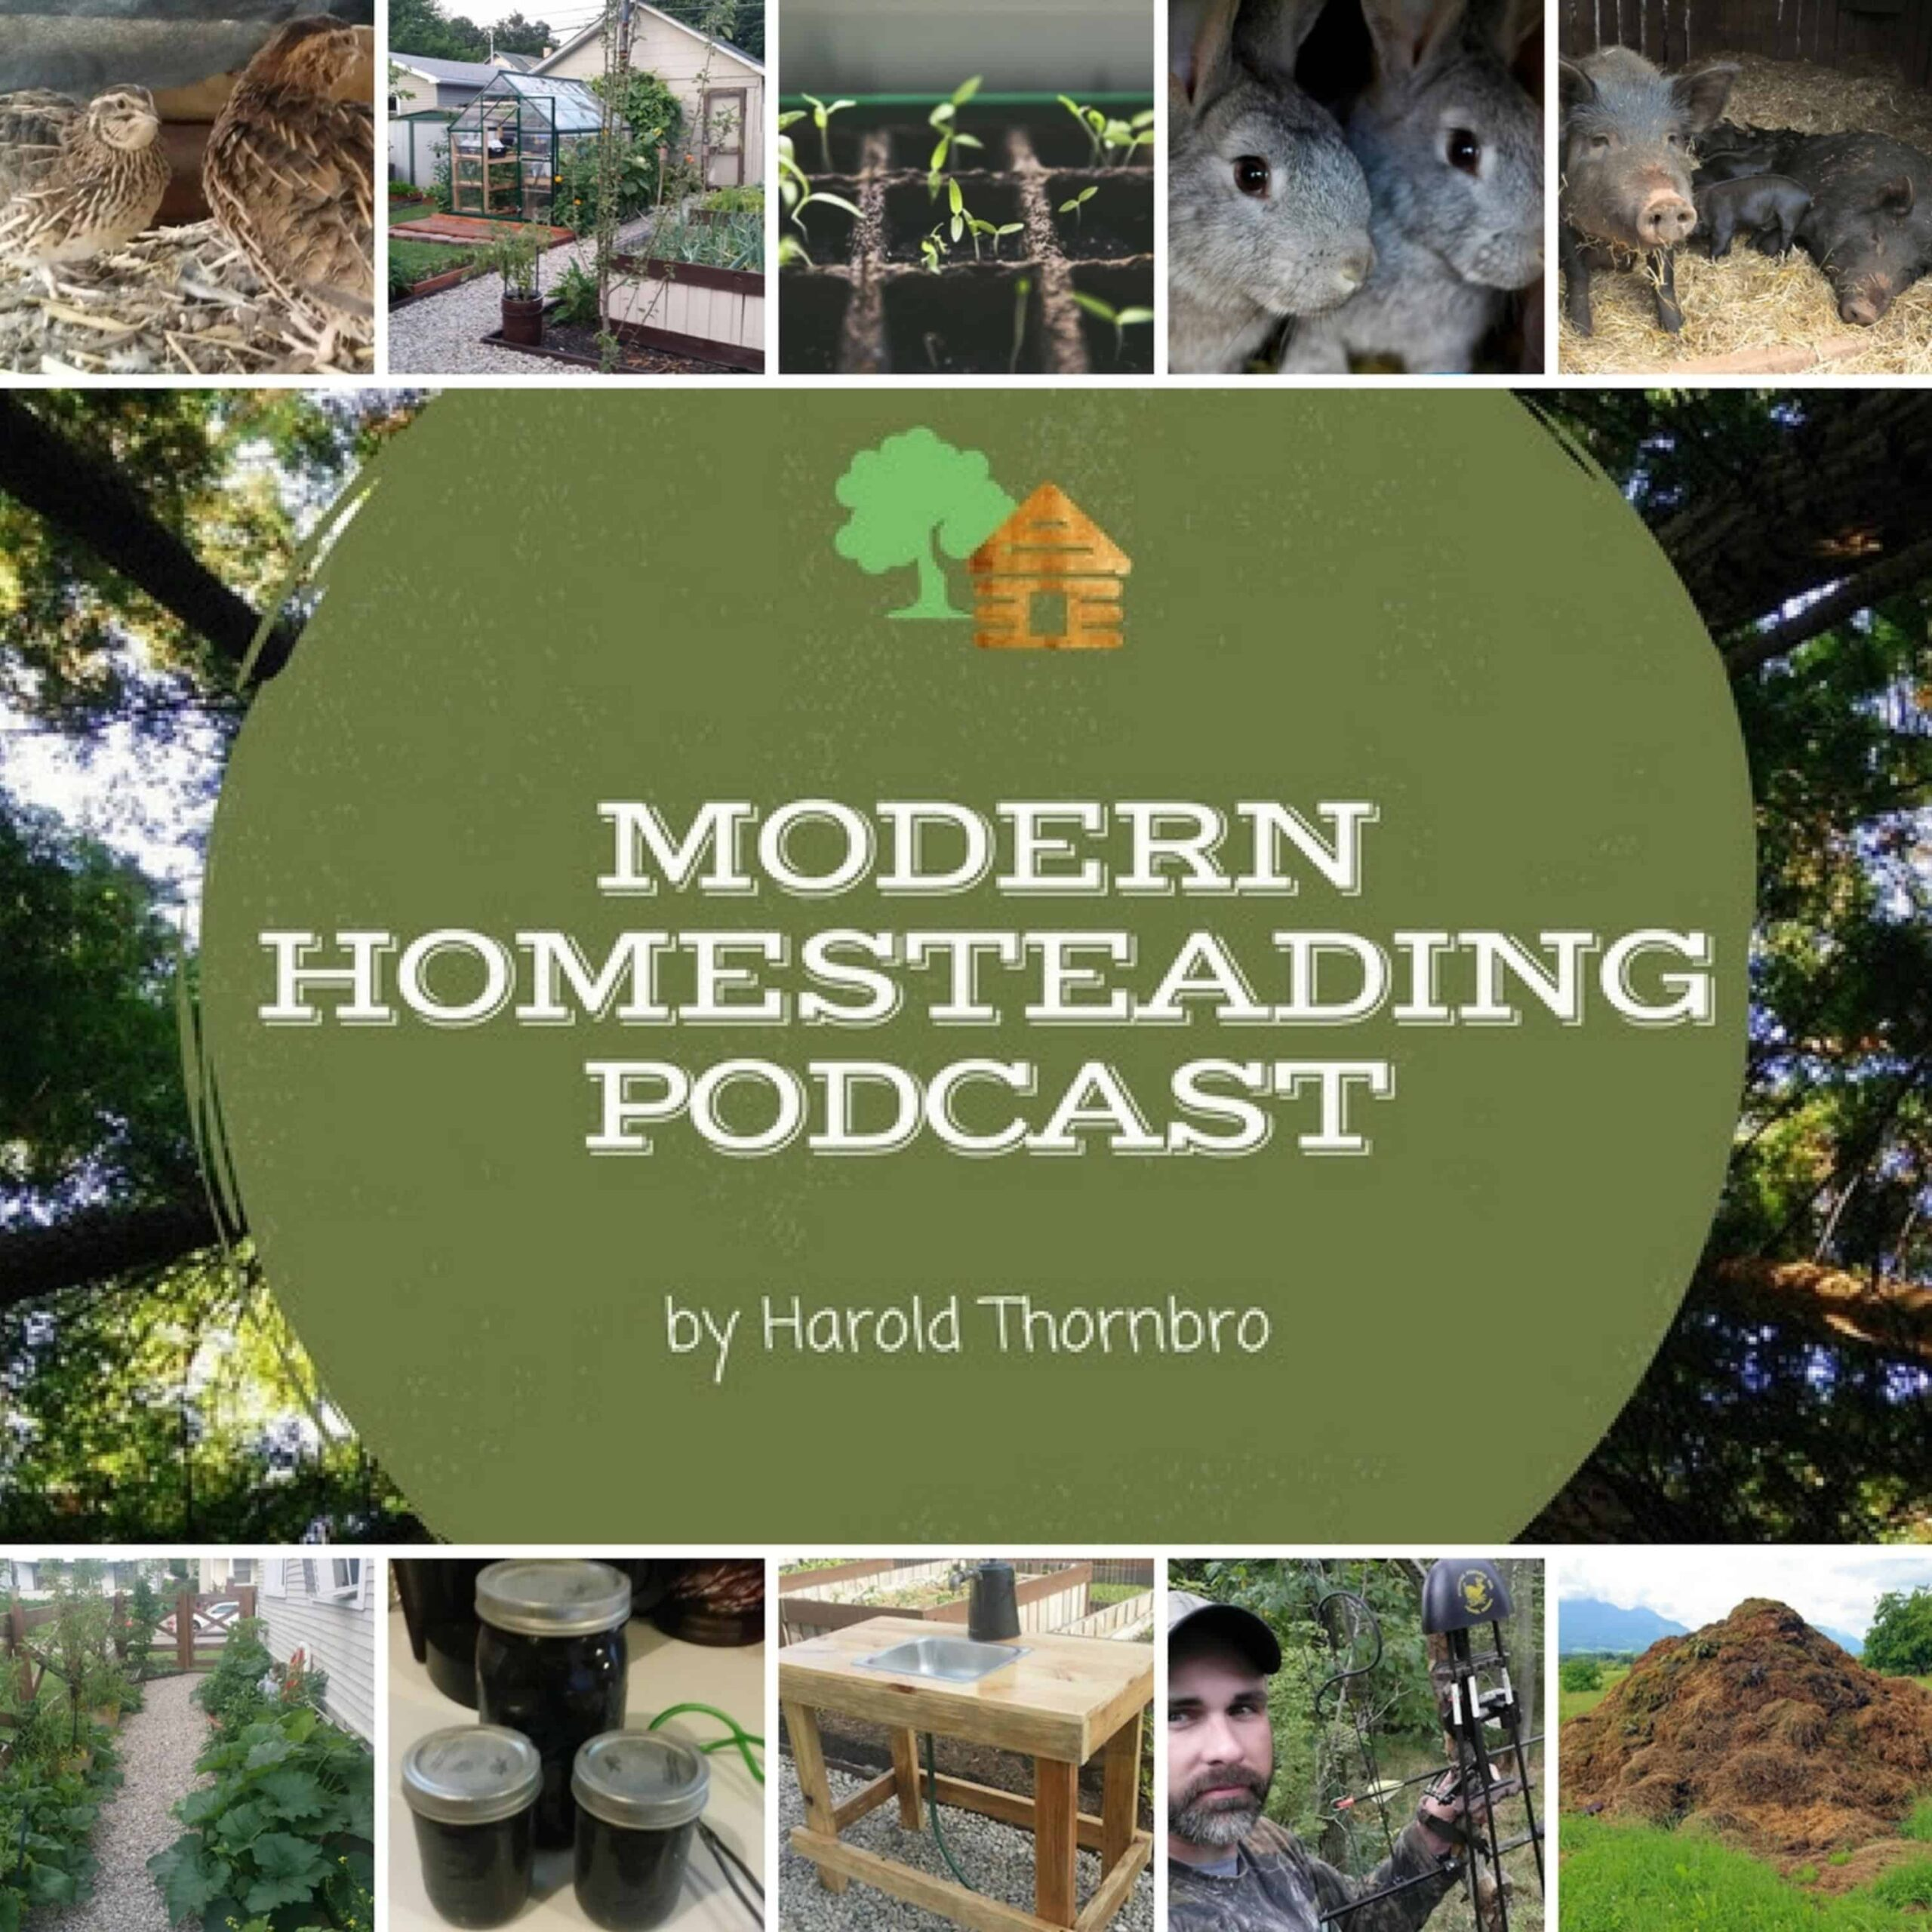 Having Fun While Making Homesteading A Reality With Guests Kevin and Heather O'Rourke